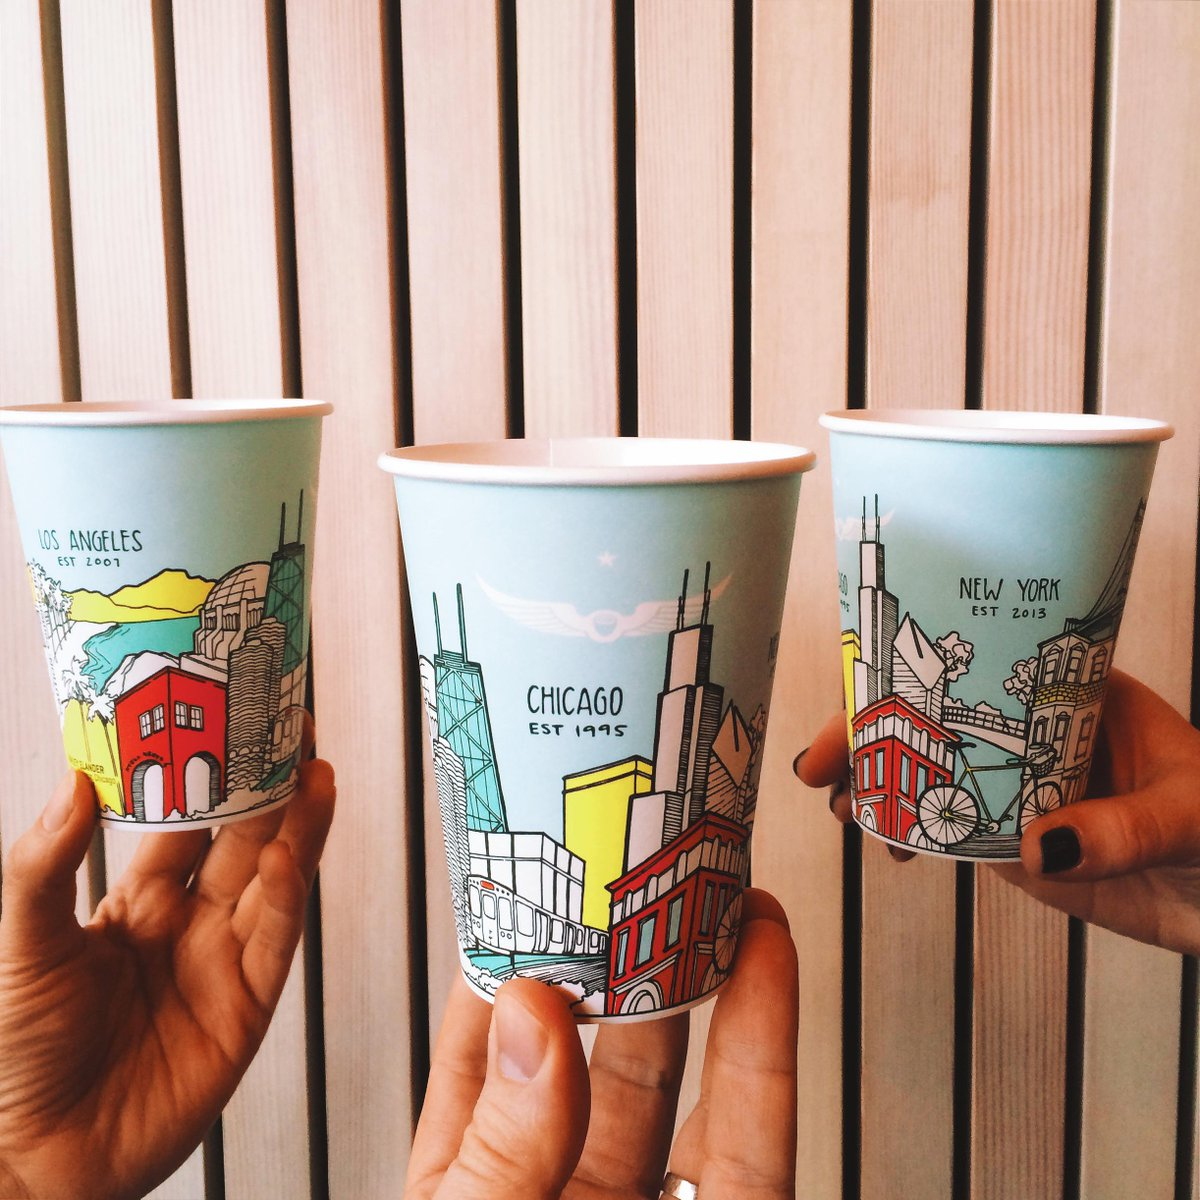 Loving this new cups - design by our own @drawashleydraw http://t.co/leT9IfbIeR